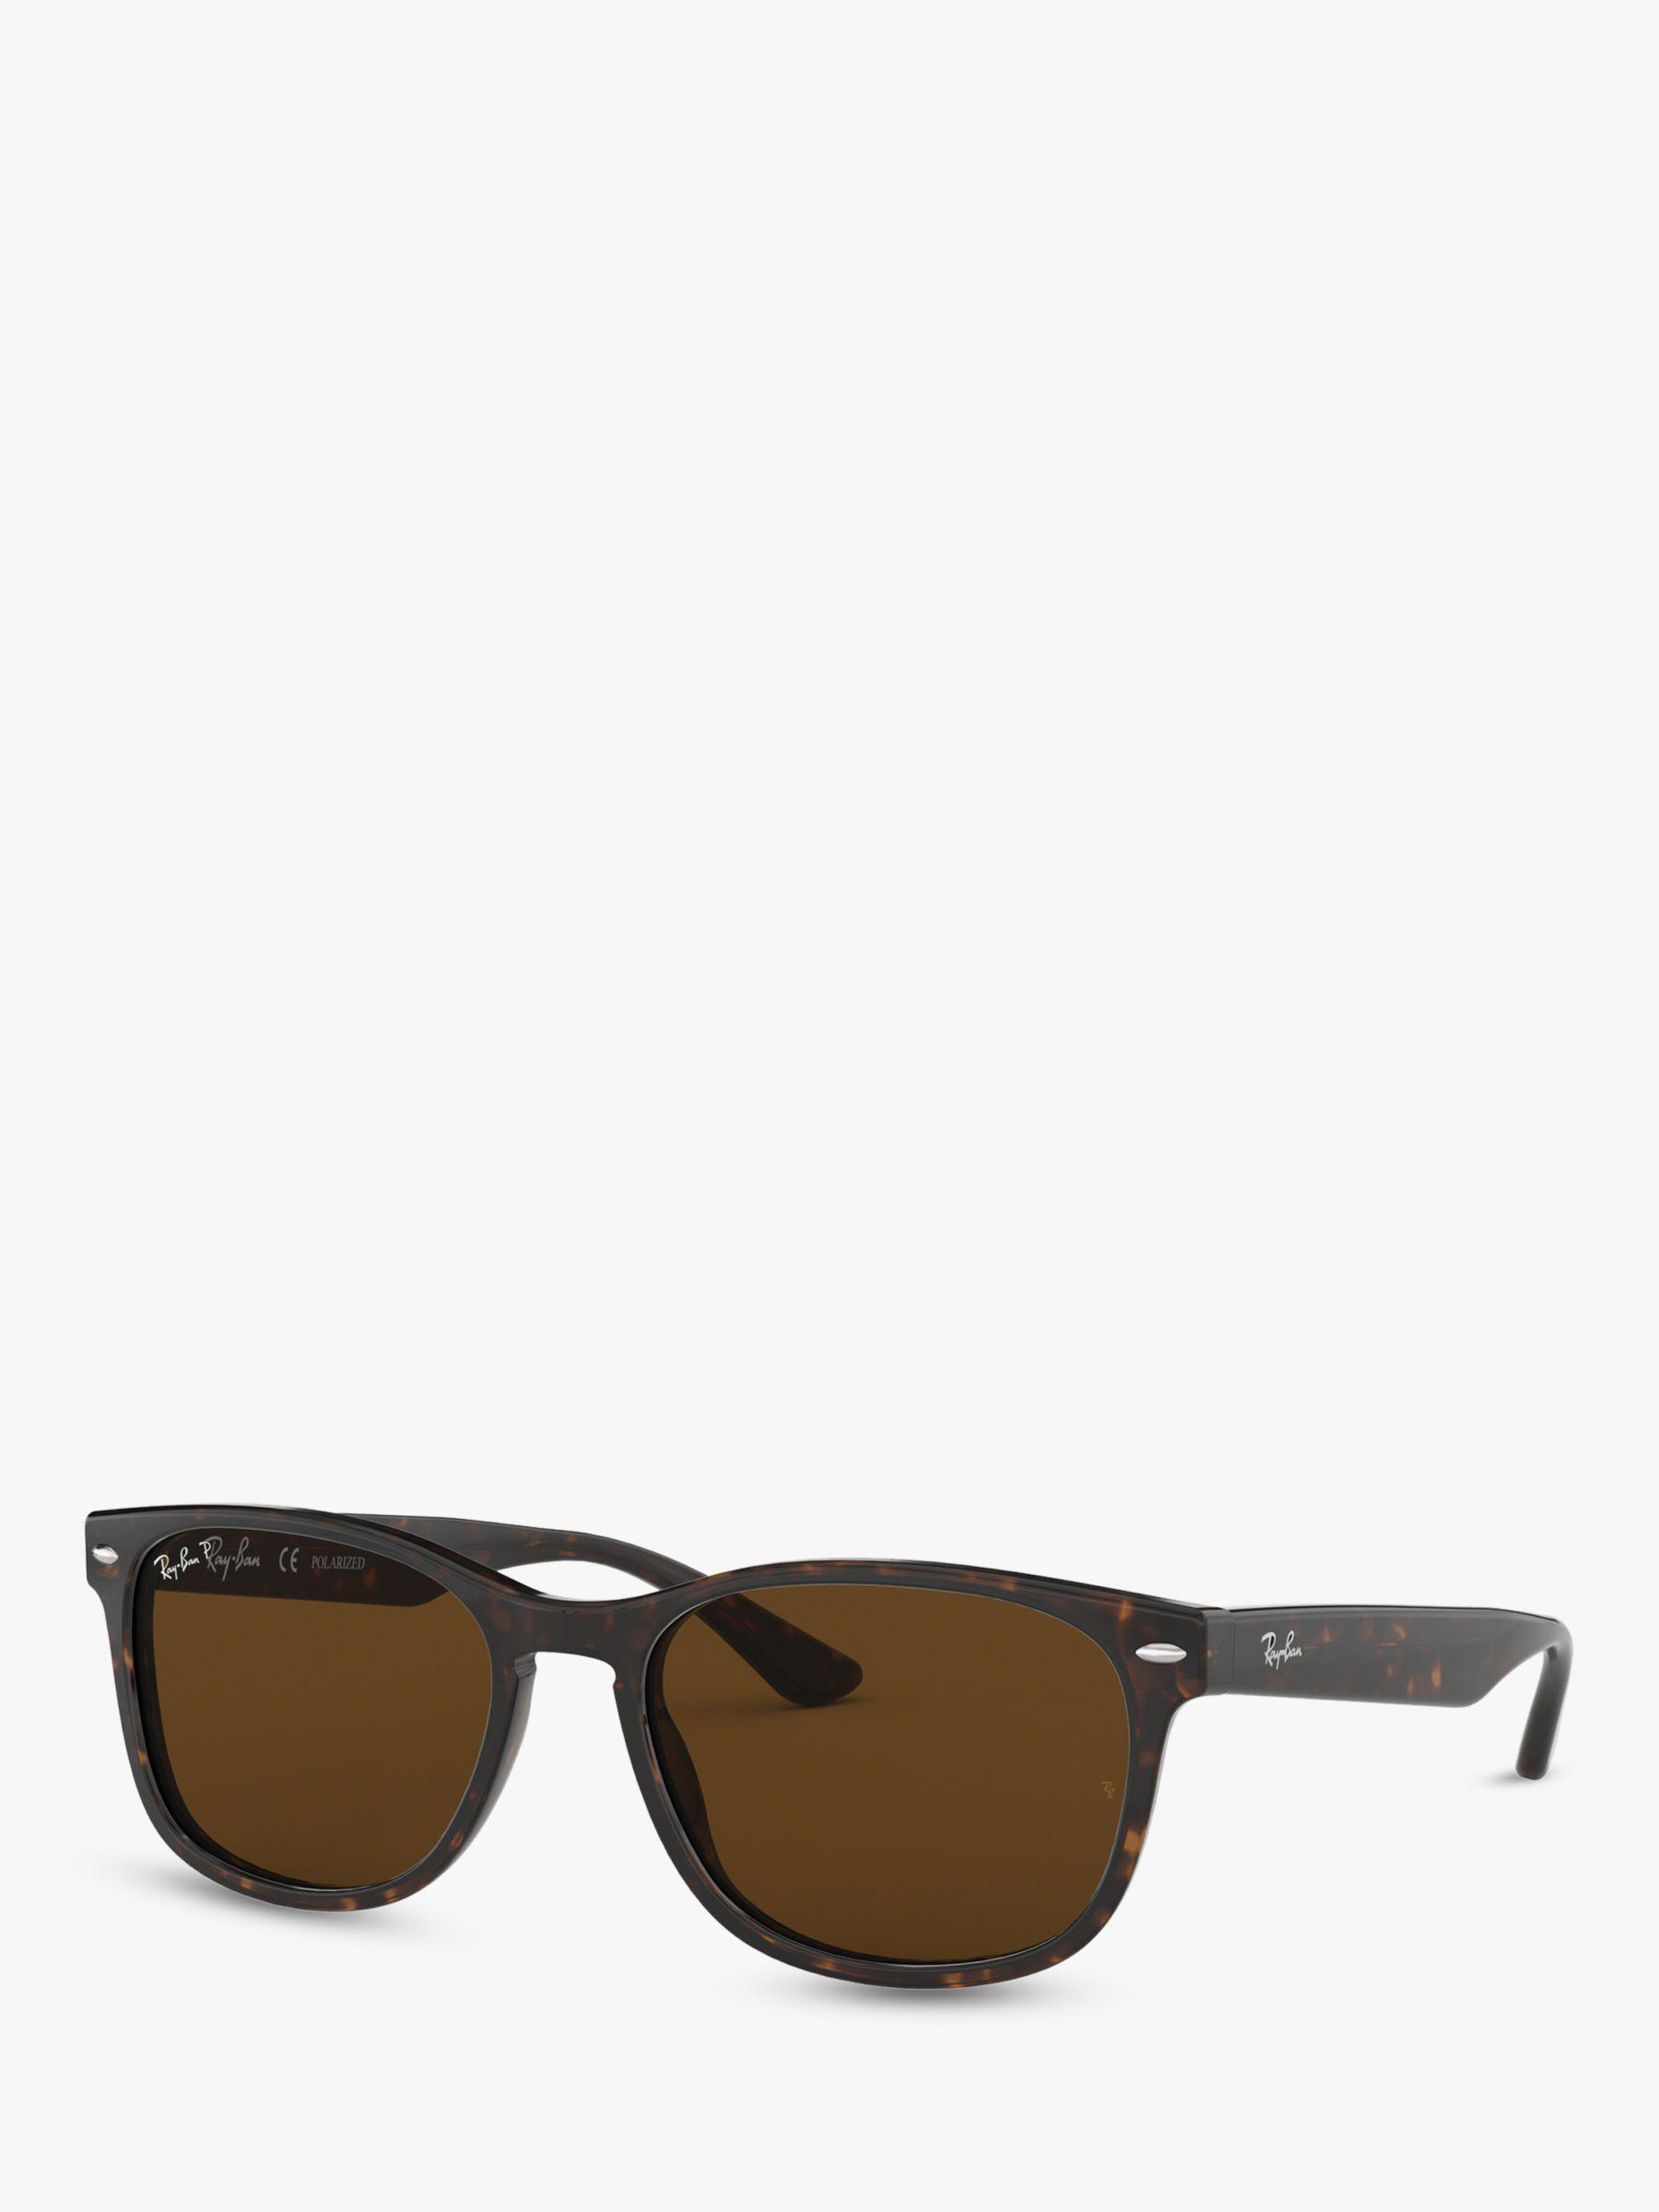 f33f251a56 Ray-Ban Rb2184 Women s Polarised Square Sunglasses in Brown - Lyst